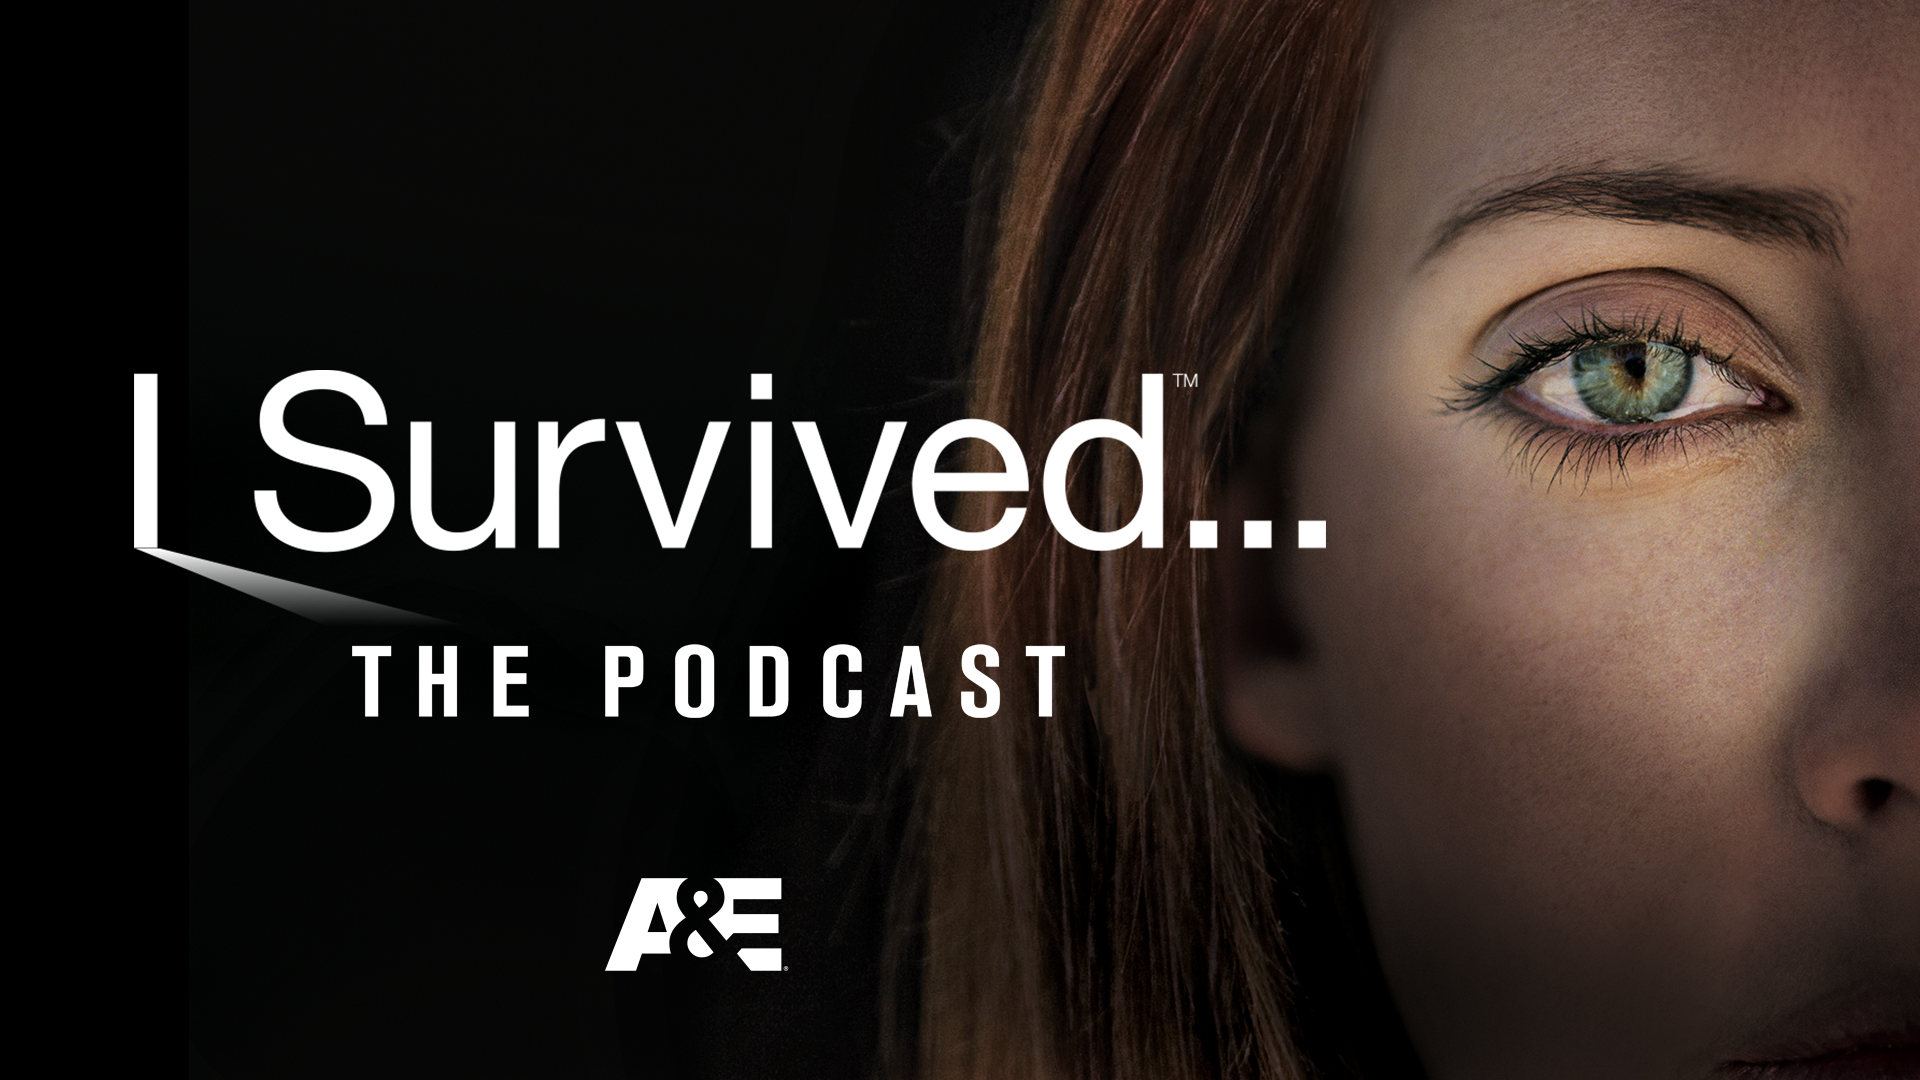 I Survived: The Podcast